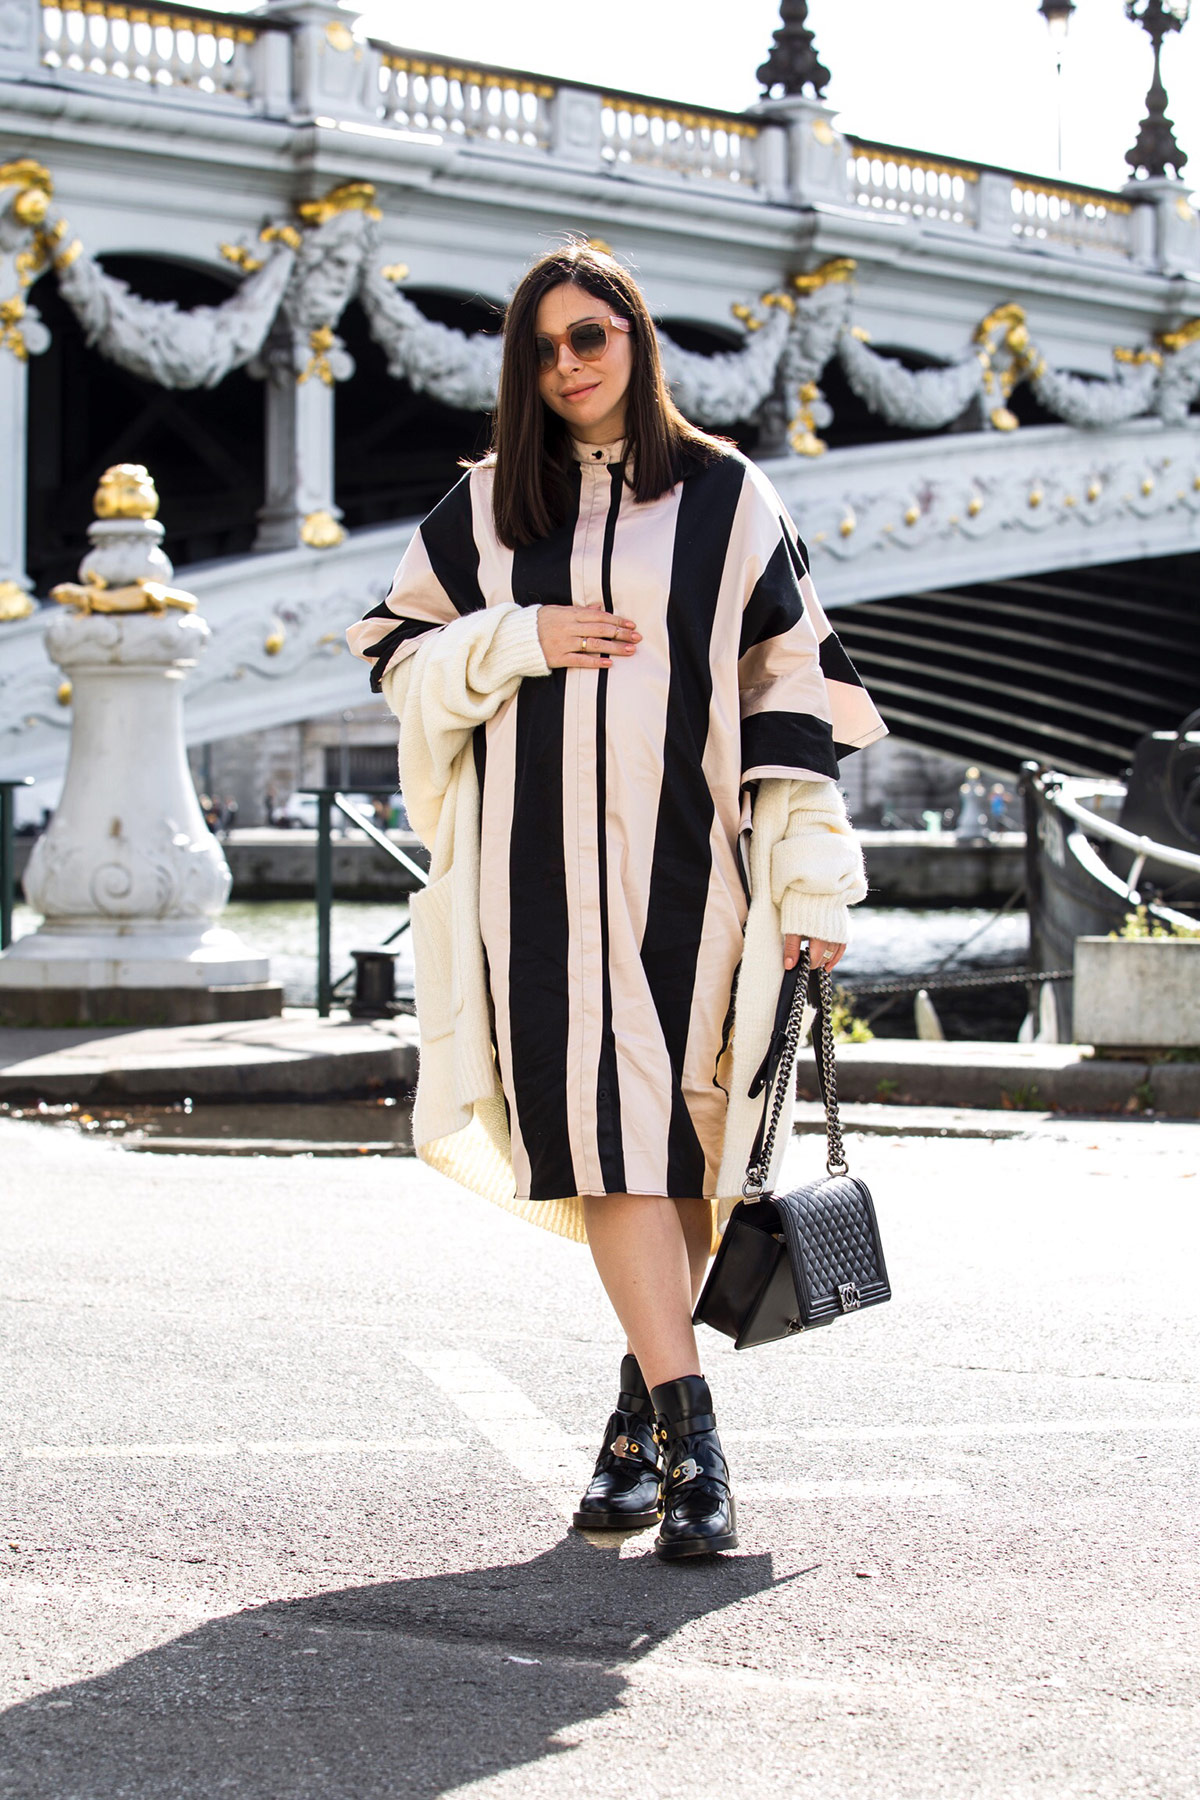 pregnancy style - stripes and ruffles dress for Paris Fashion Week by Stella Asteria - Fashion & Lifestyle Blogger